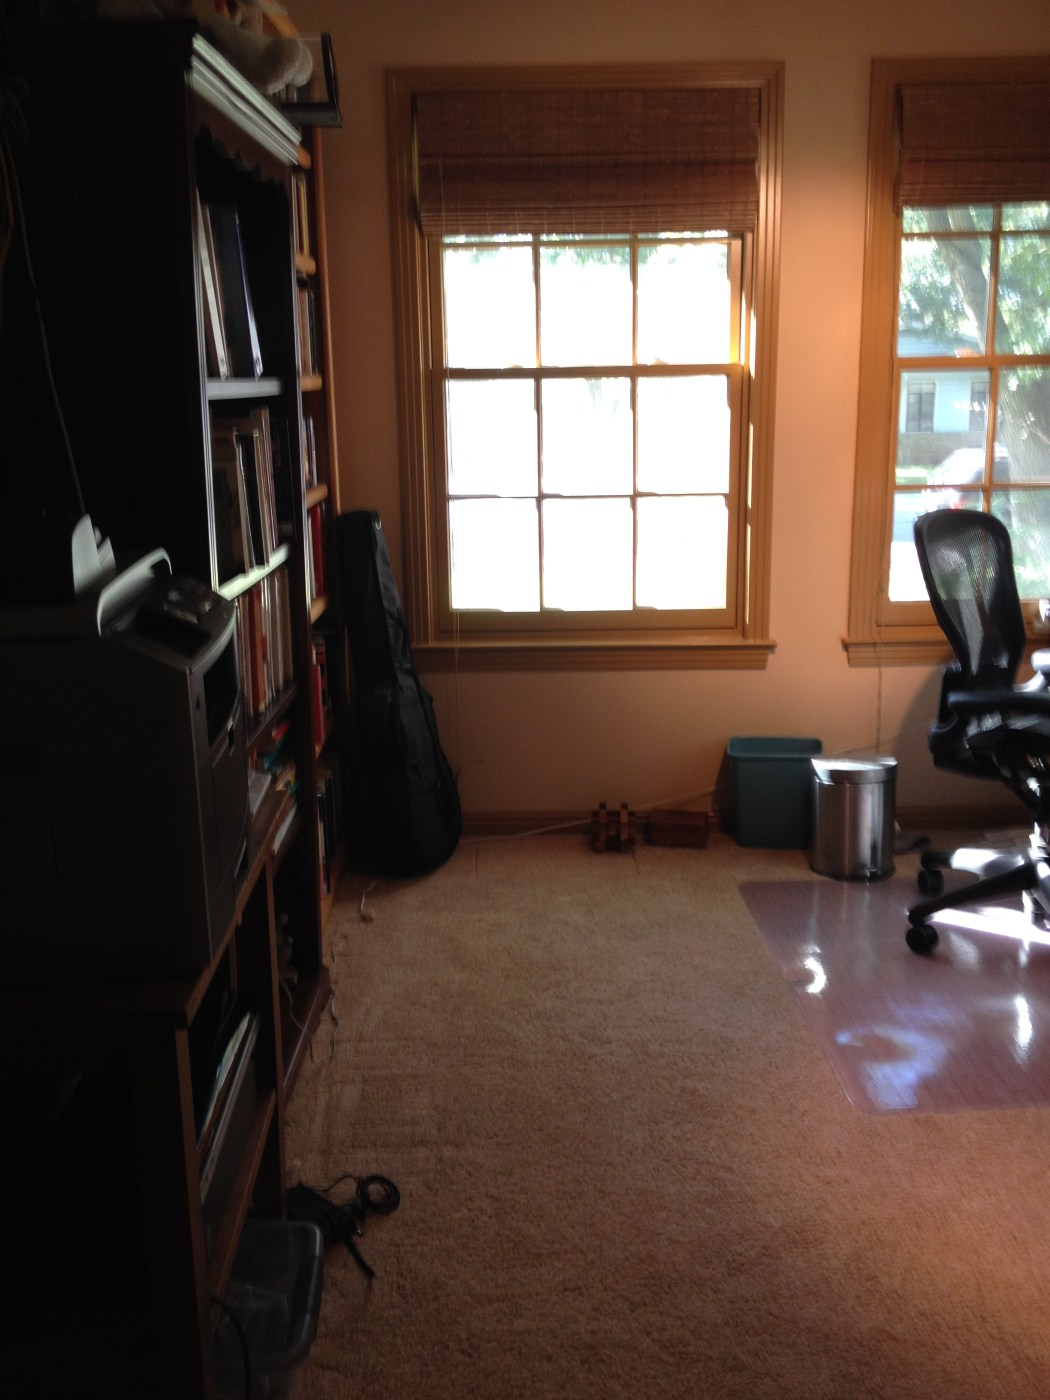 Purging Outdated Technology in a Home Office Closet - Decluttered Home Office Corner